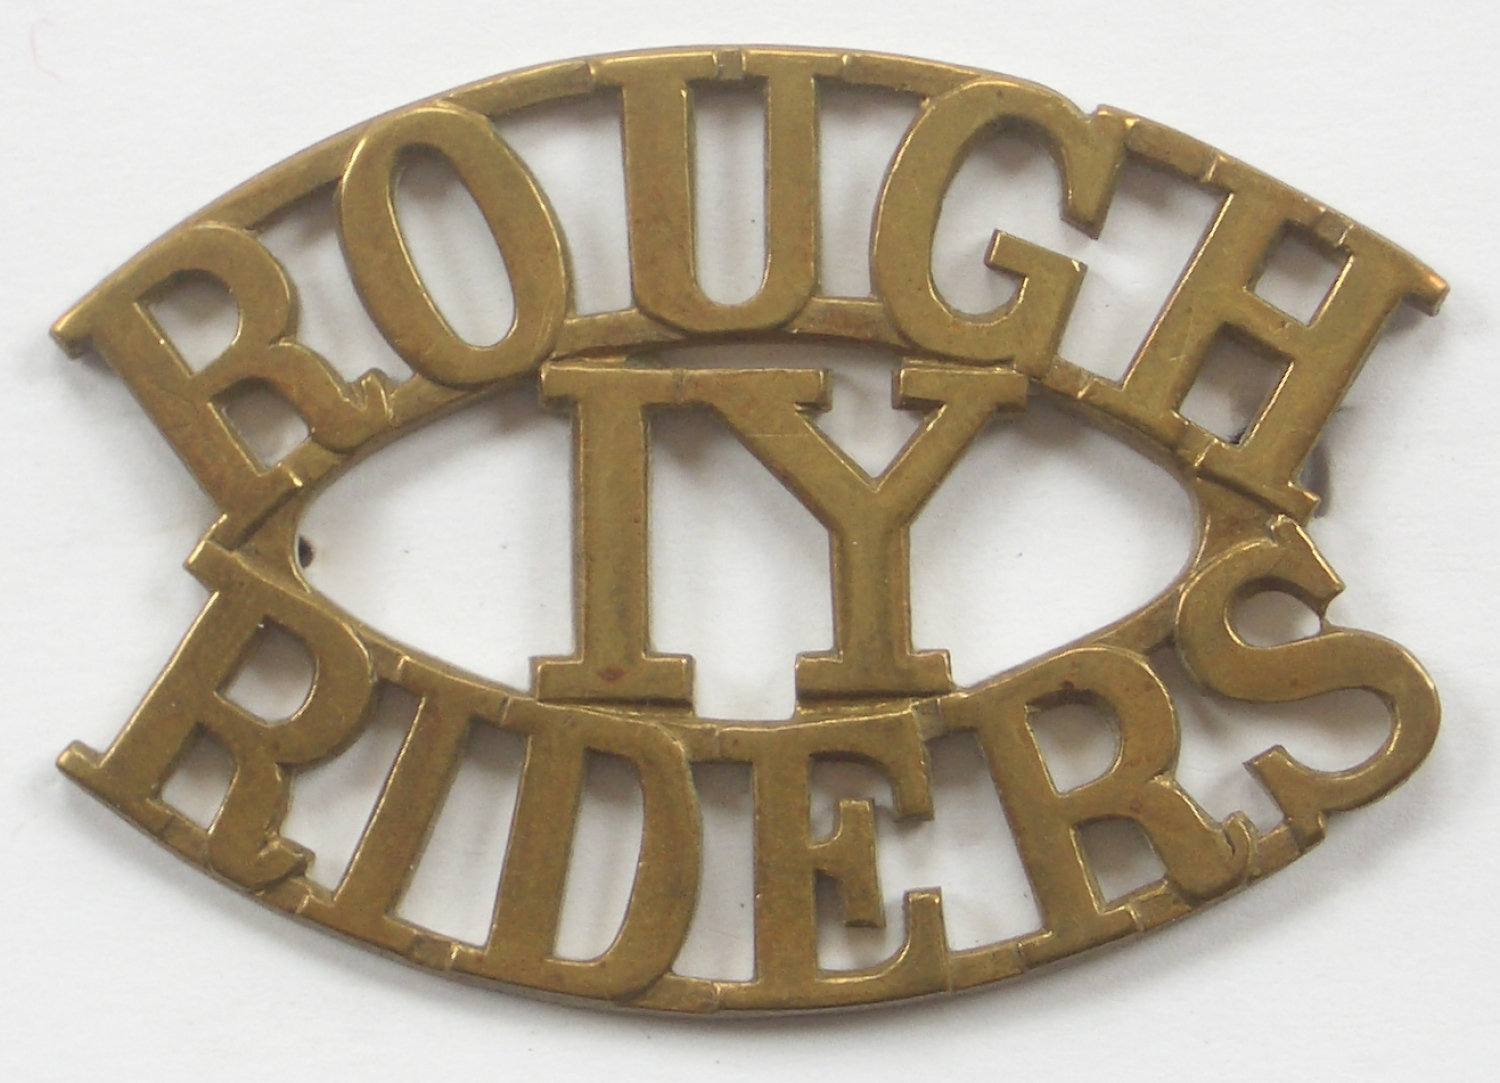 ROUGH / IY / RIDERS scarce shoulder title